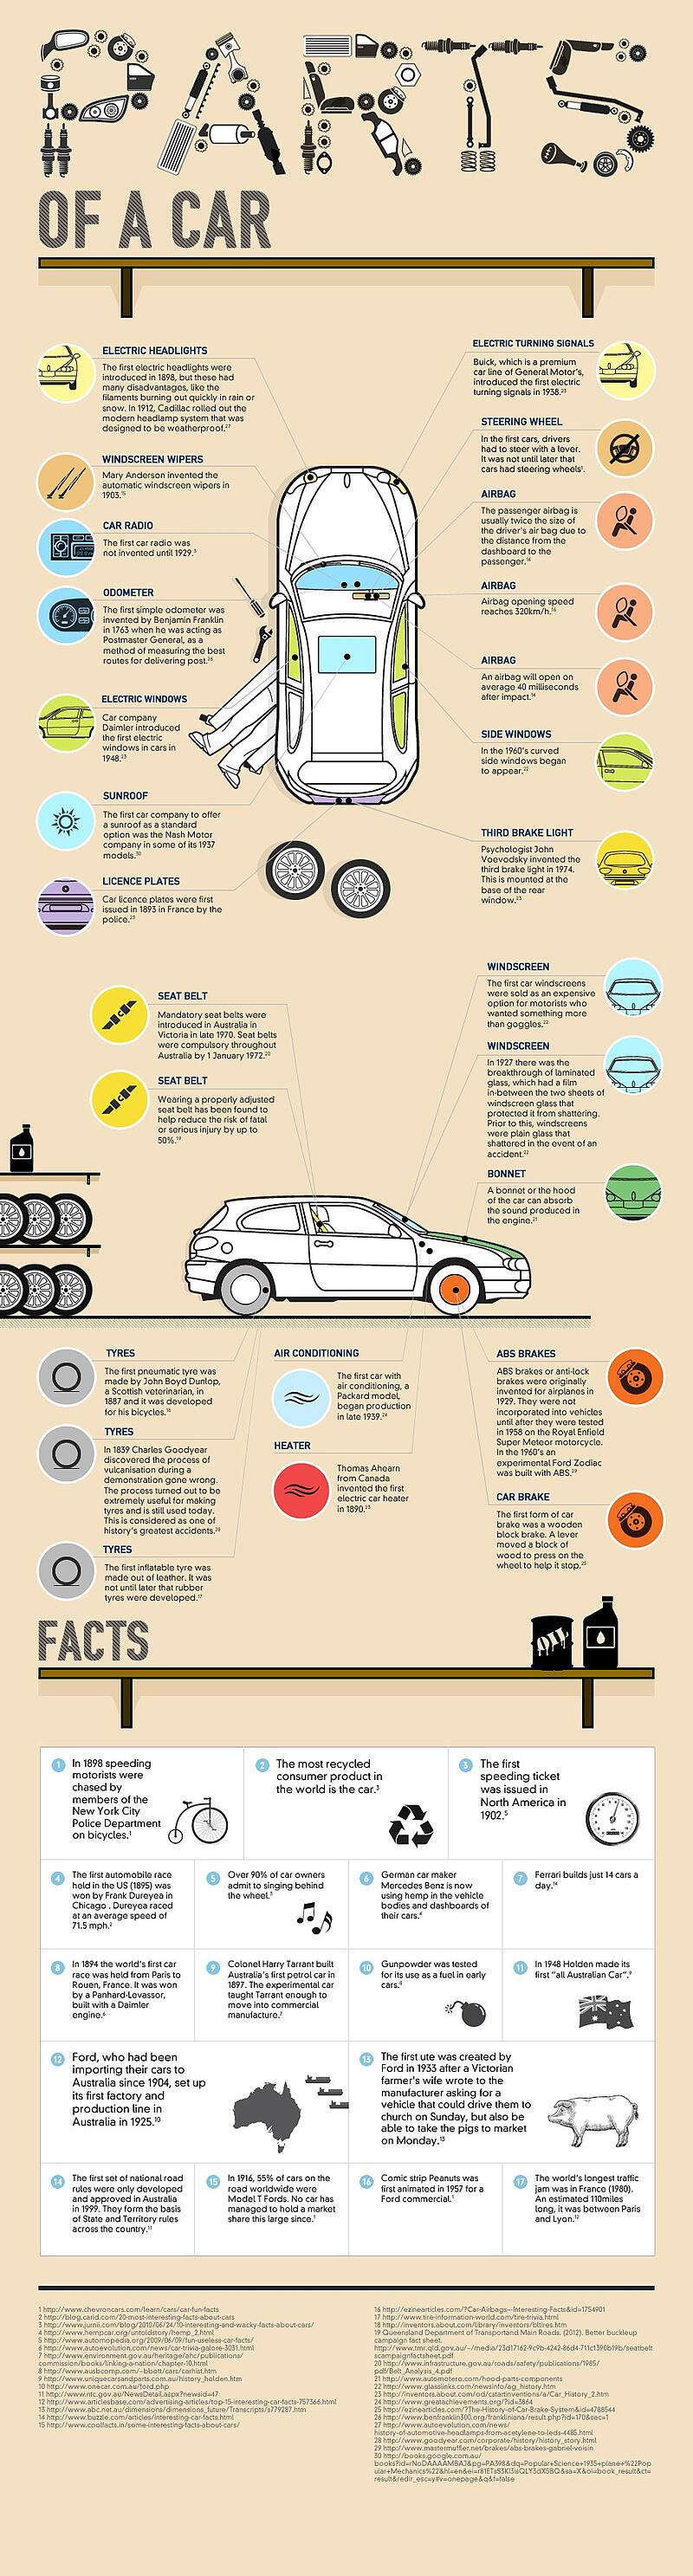 An infographic look at the parts of a car and their strange histories. Facts about the features of modern cars and the creation of road rules. Add this infographic from Allianz car insurance.